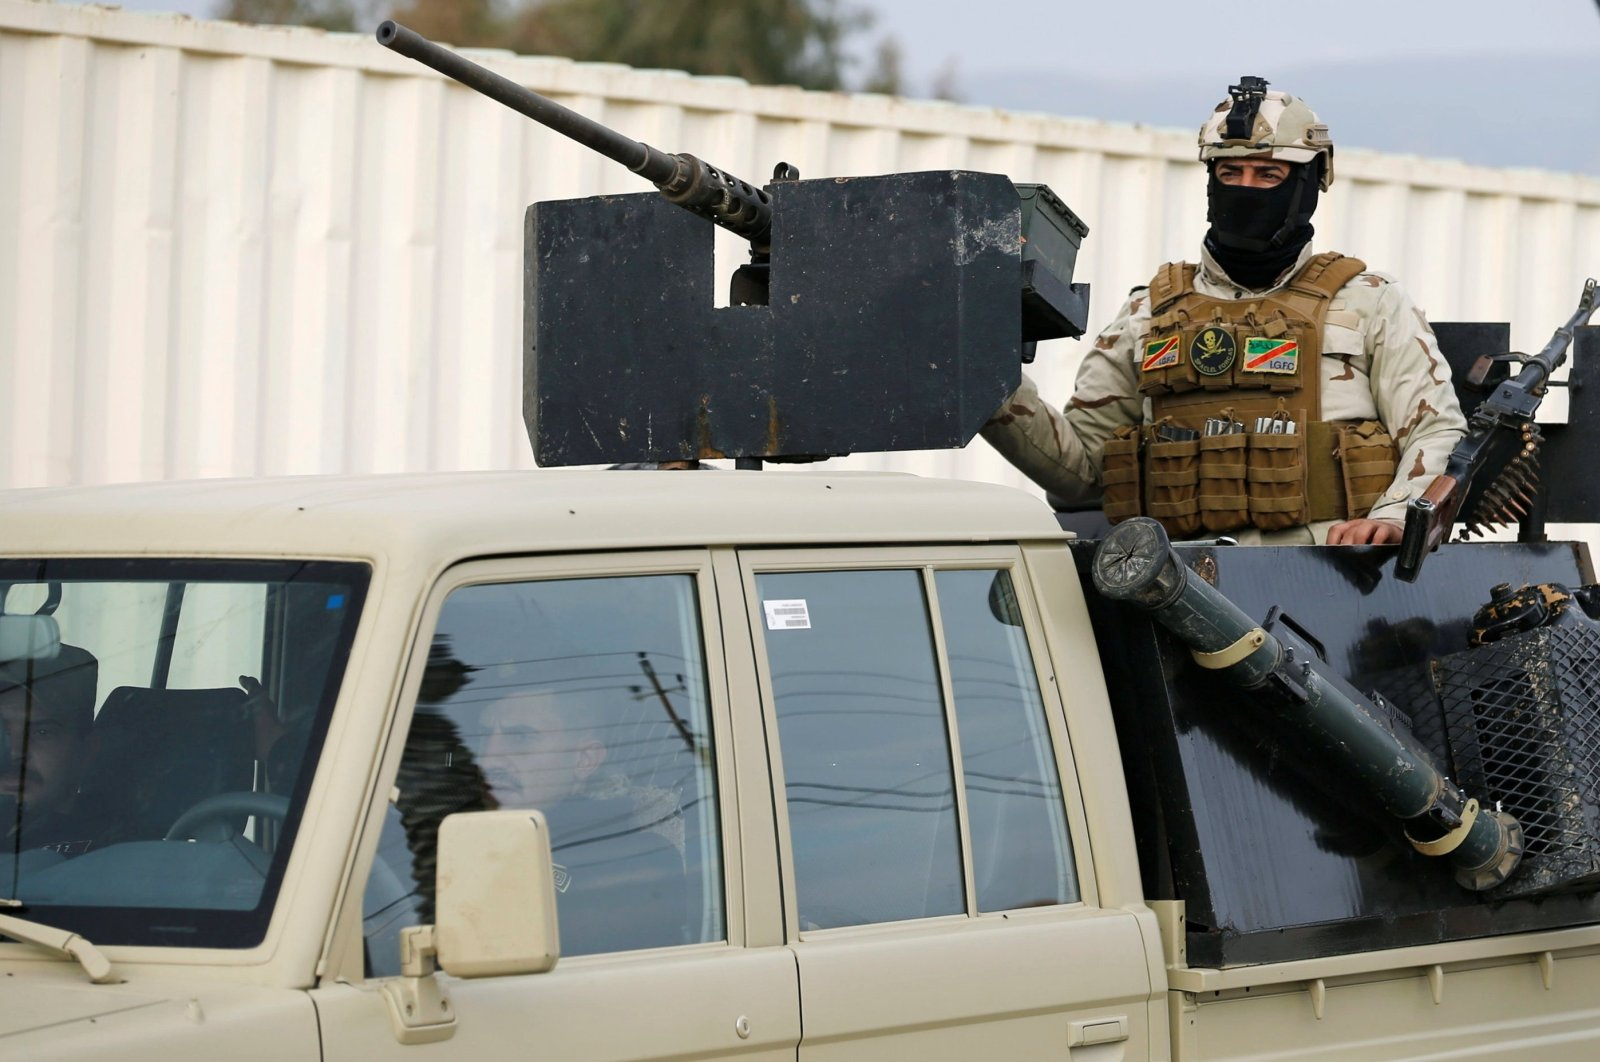 A member of Iraqi security forces rides on a military vehicle during deployments in Sinjar, Iraq, Dec. 1, 2020. (REUTERS)